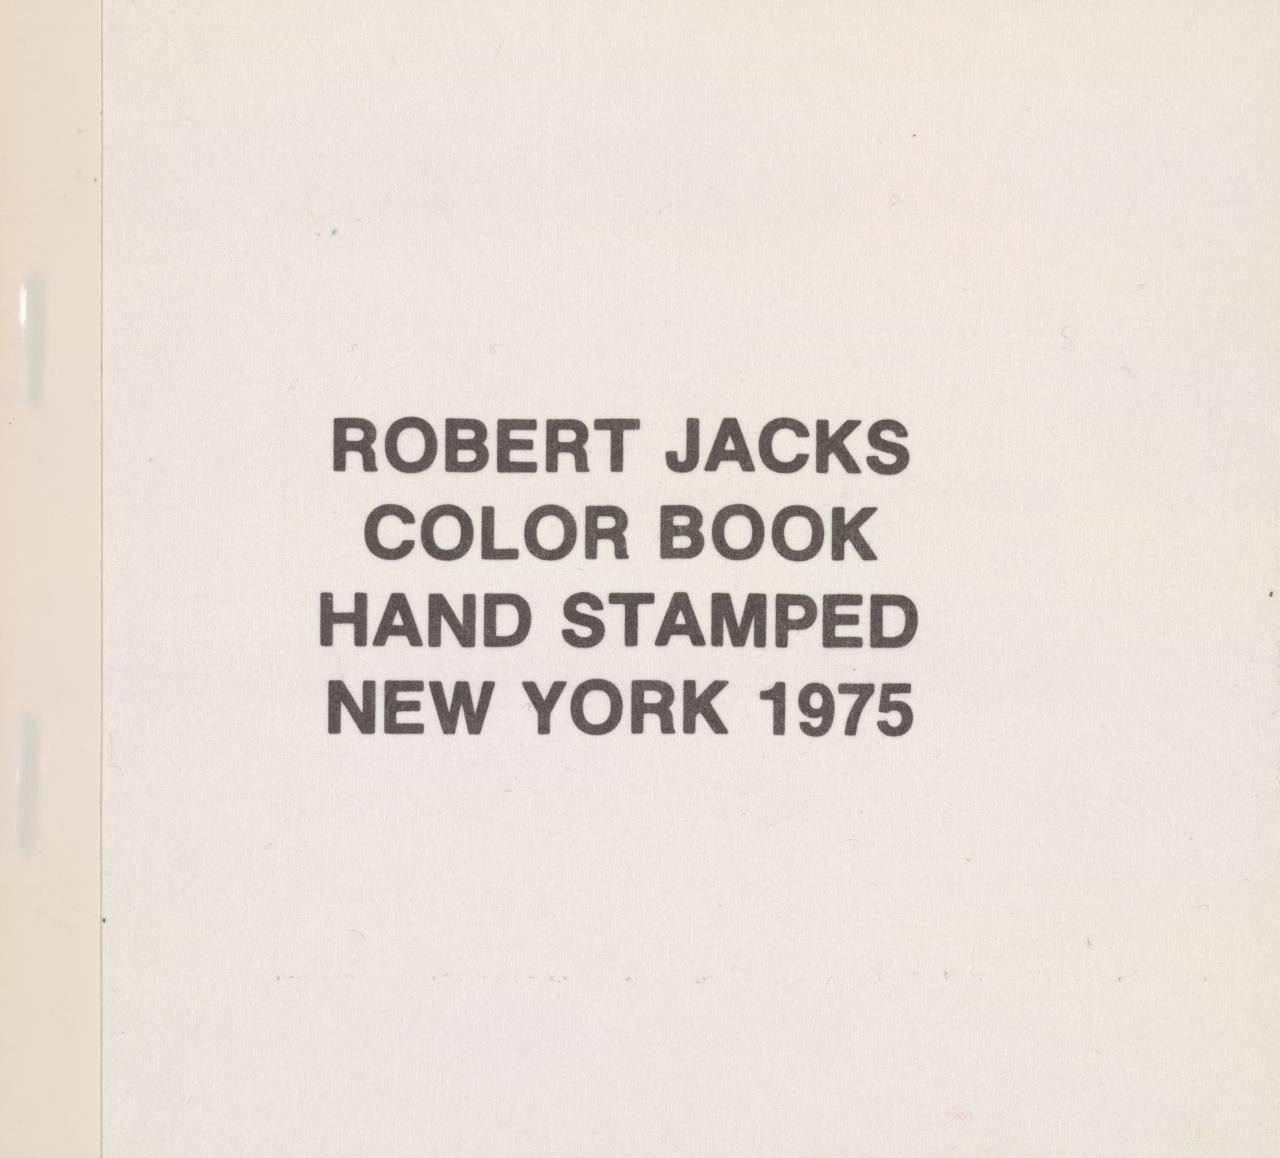 Color book hand stamped New York 1975